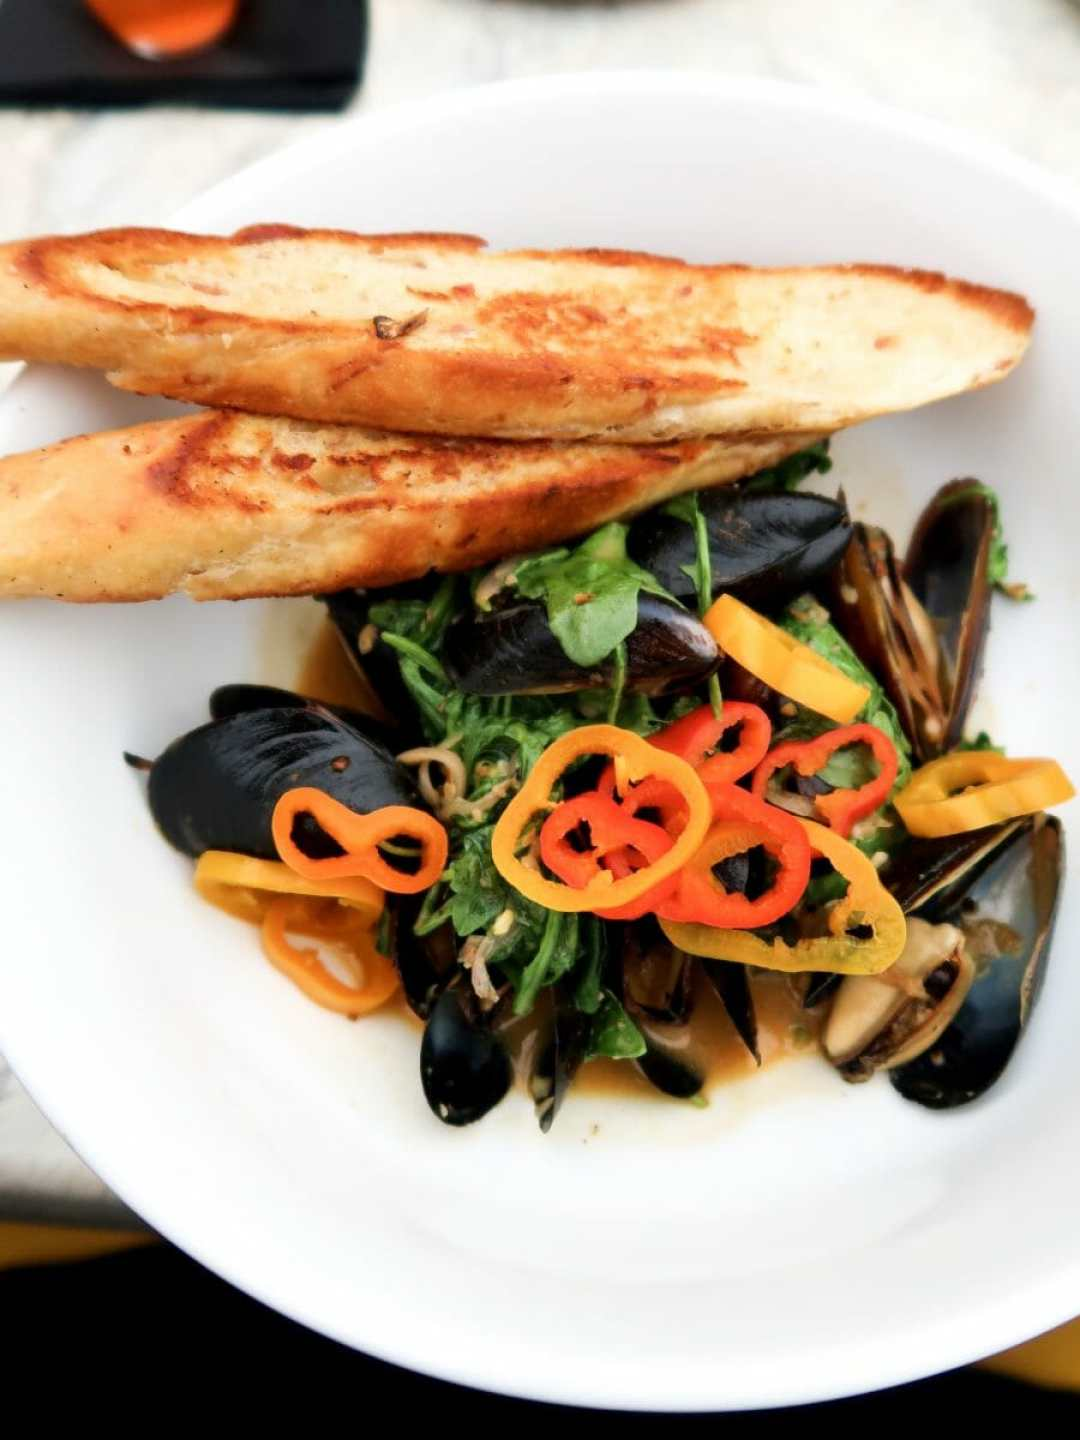 Mussels At The 502 Bar & Bistro